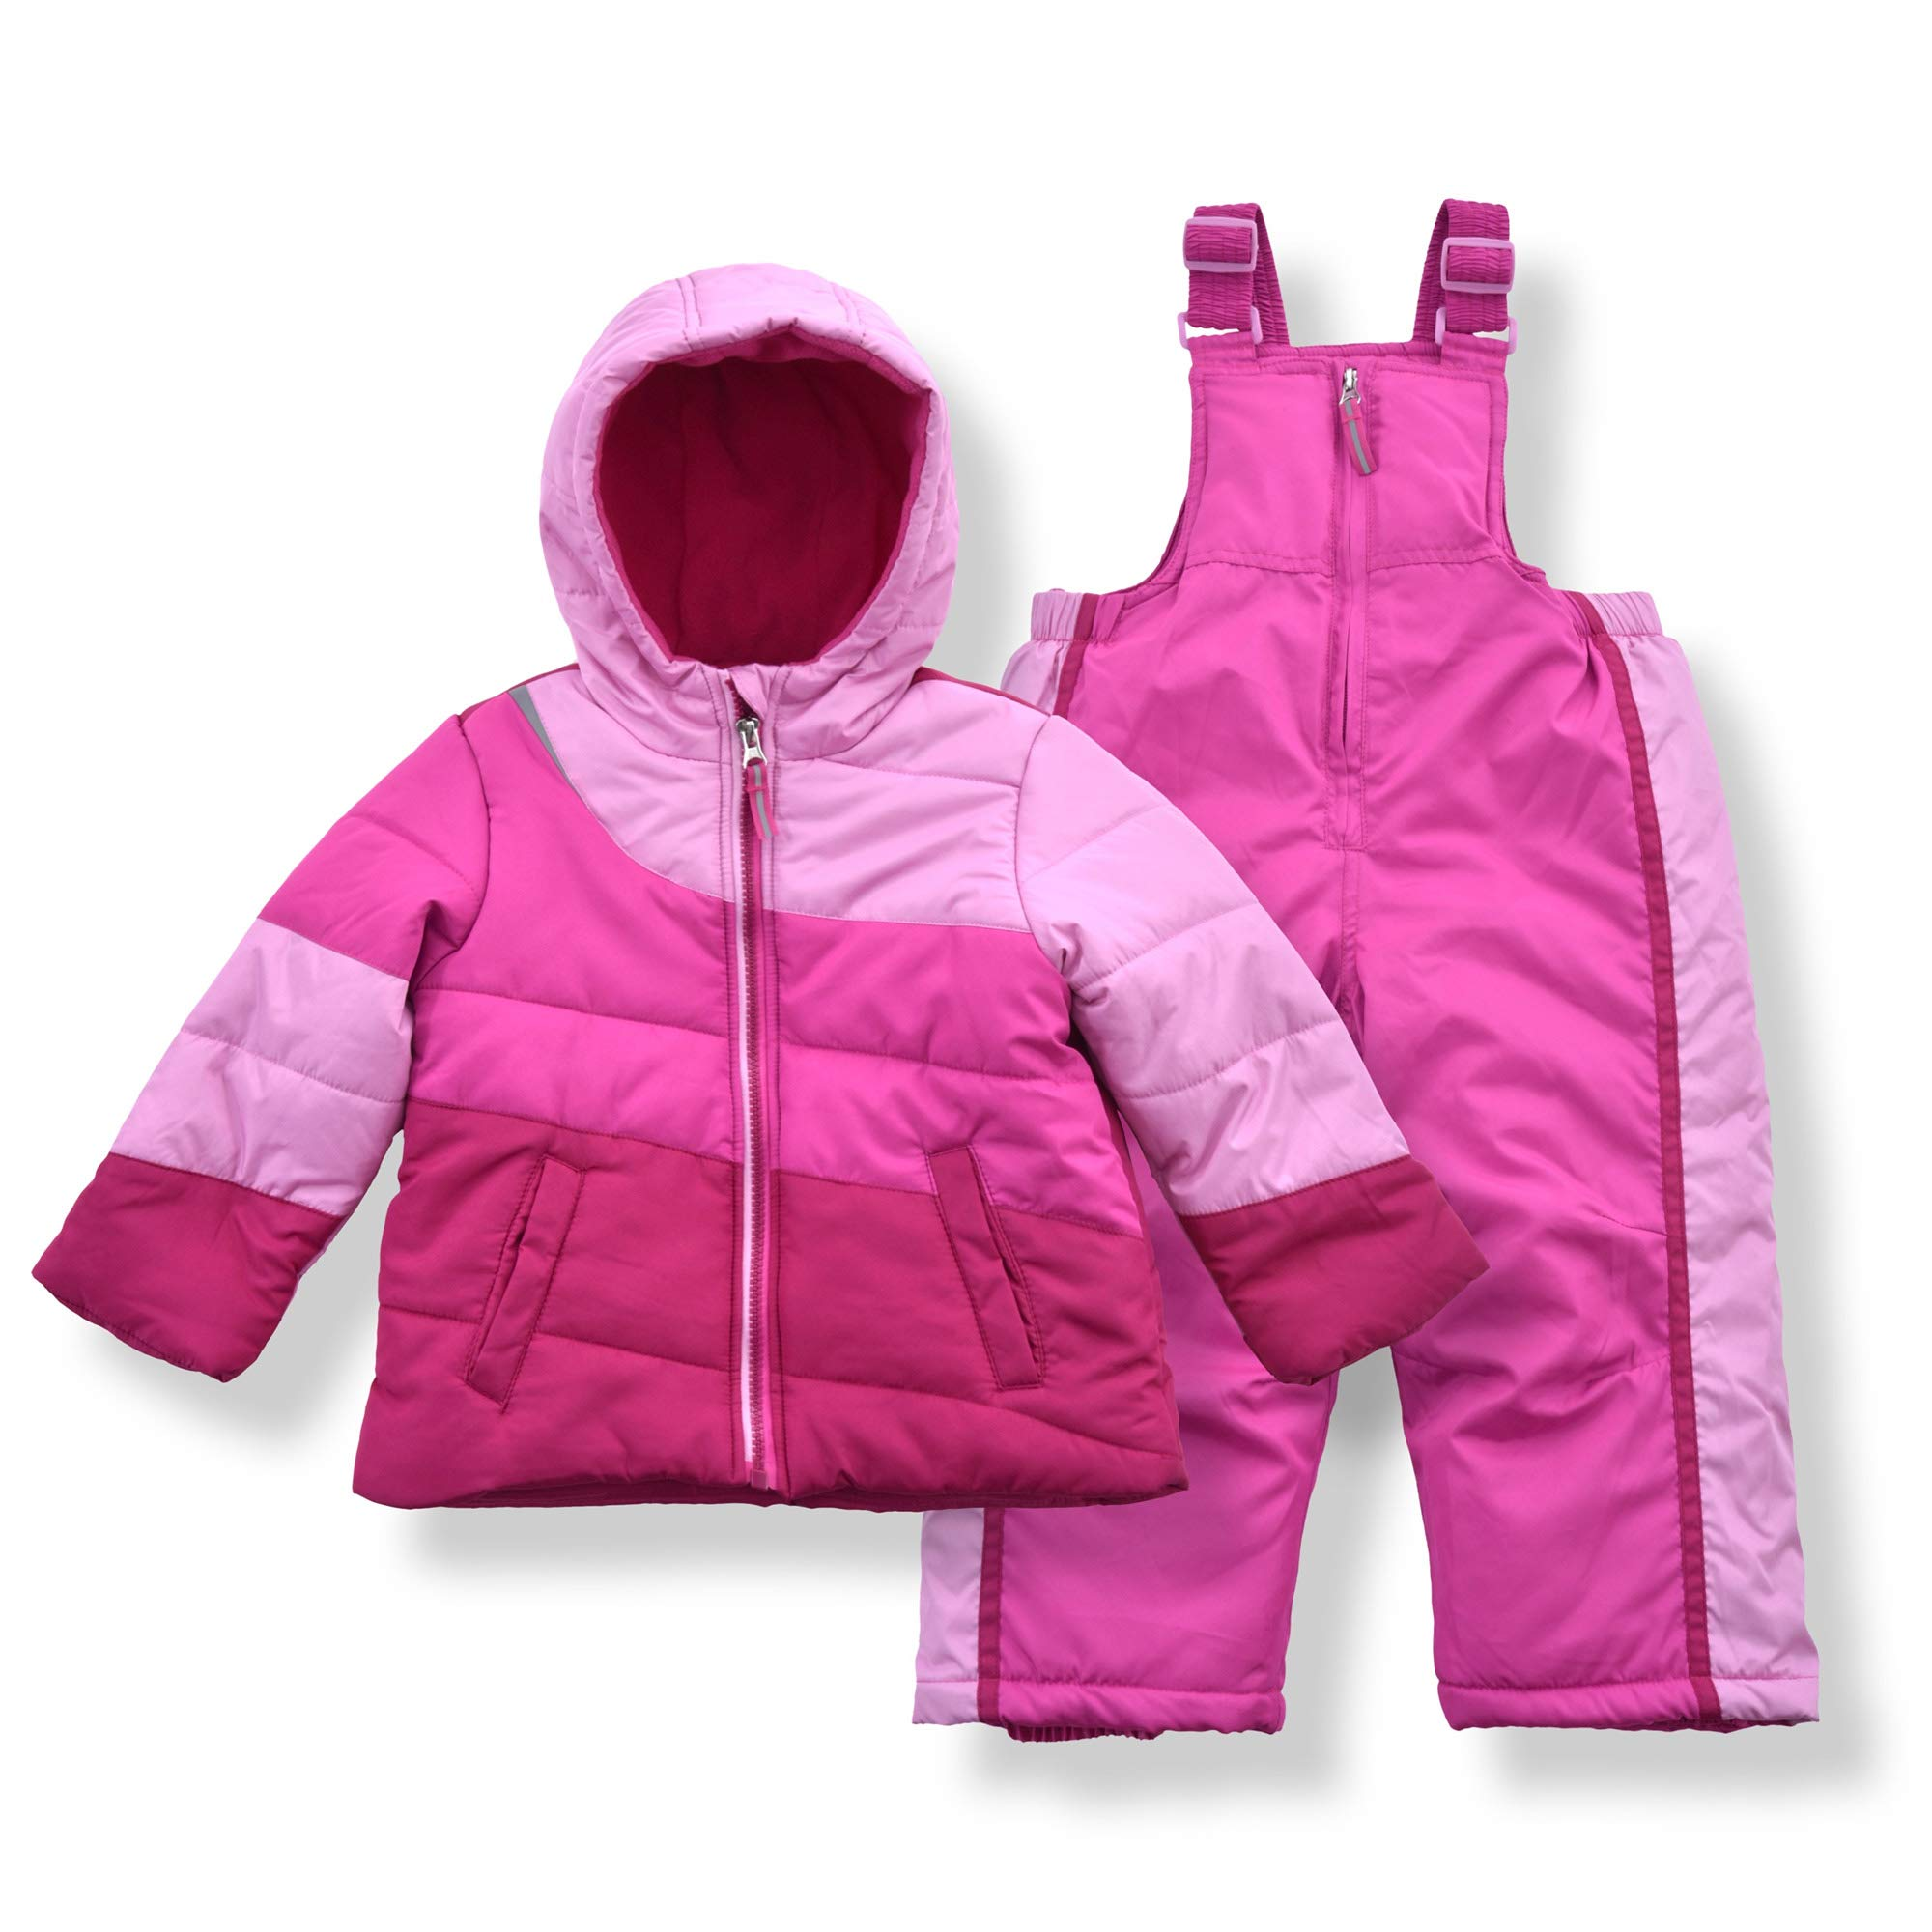 Arctic Quest Infant & Toddler Girls Color Block Puffer Jacket with Fleece Lining and Snow Bib Pants Set, Rose & Pink, 6X by Arctic Quest